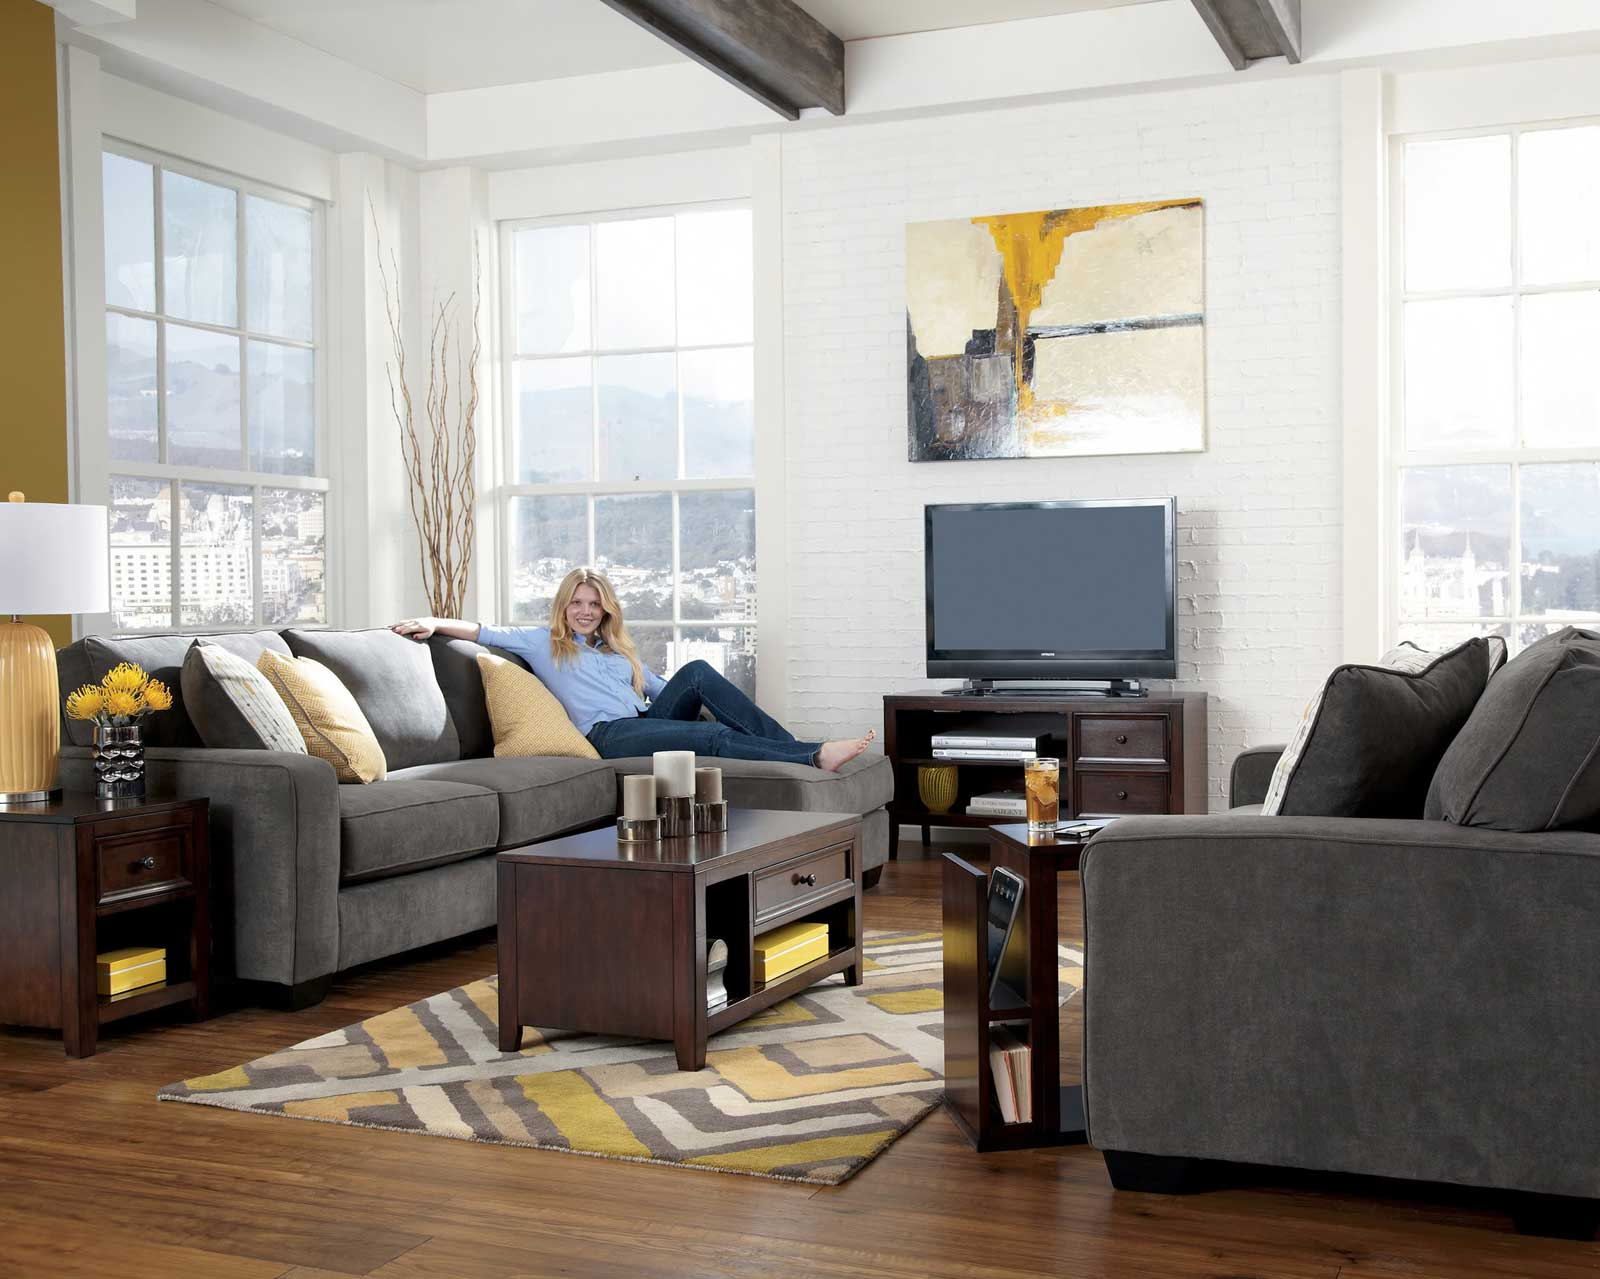 Charming Living Room Sets Furniture For Small Home Design Ideas within 14 Genius Ideas How to Improve Living Room Set With TV